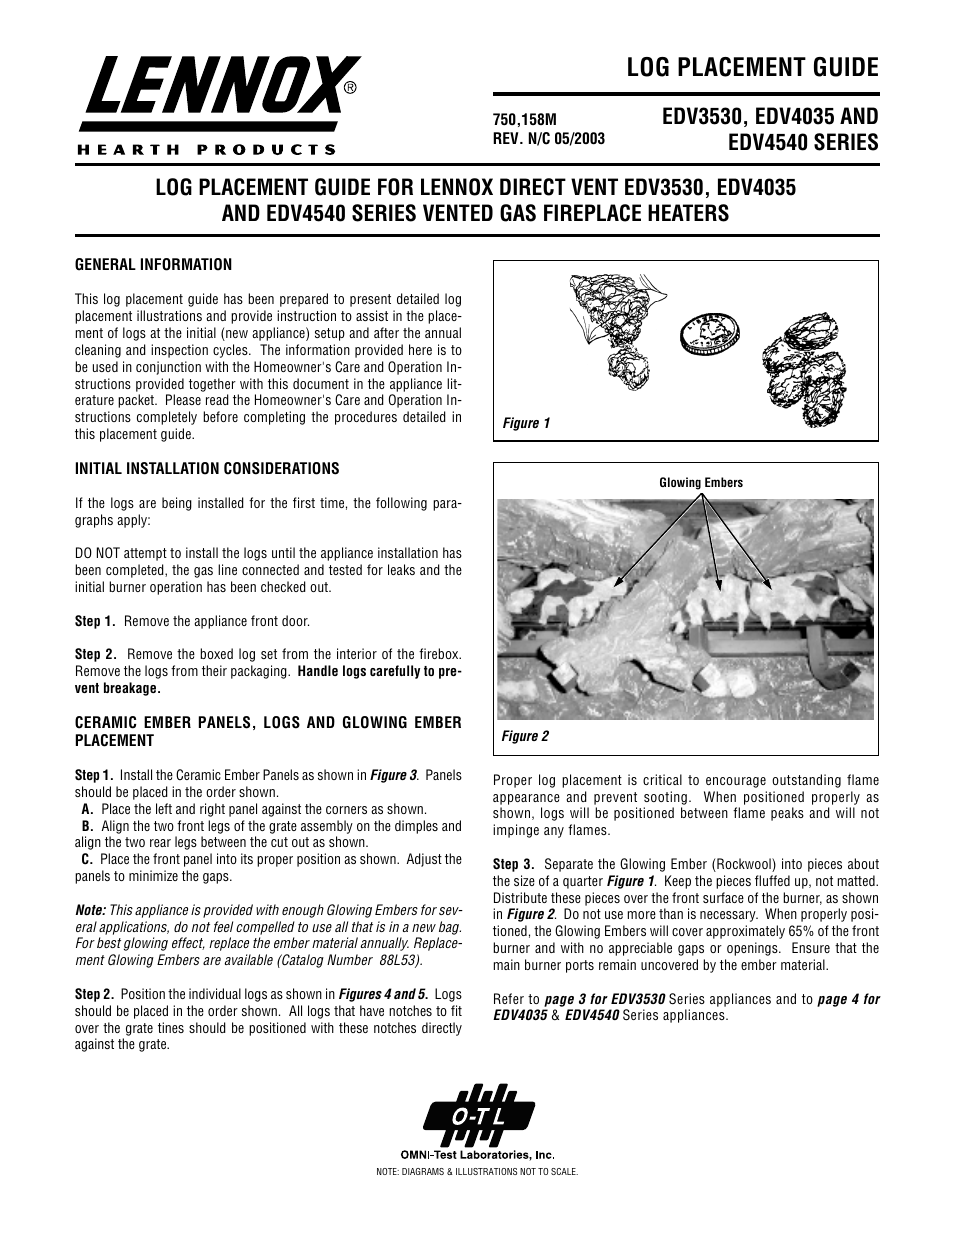 Lennox Hearth EDV3530 series User Manual 4 pages